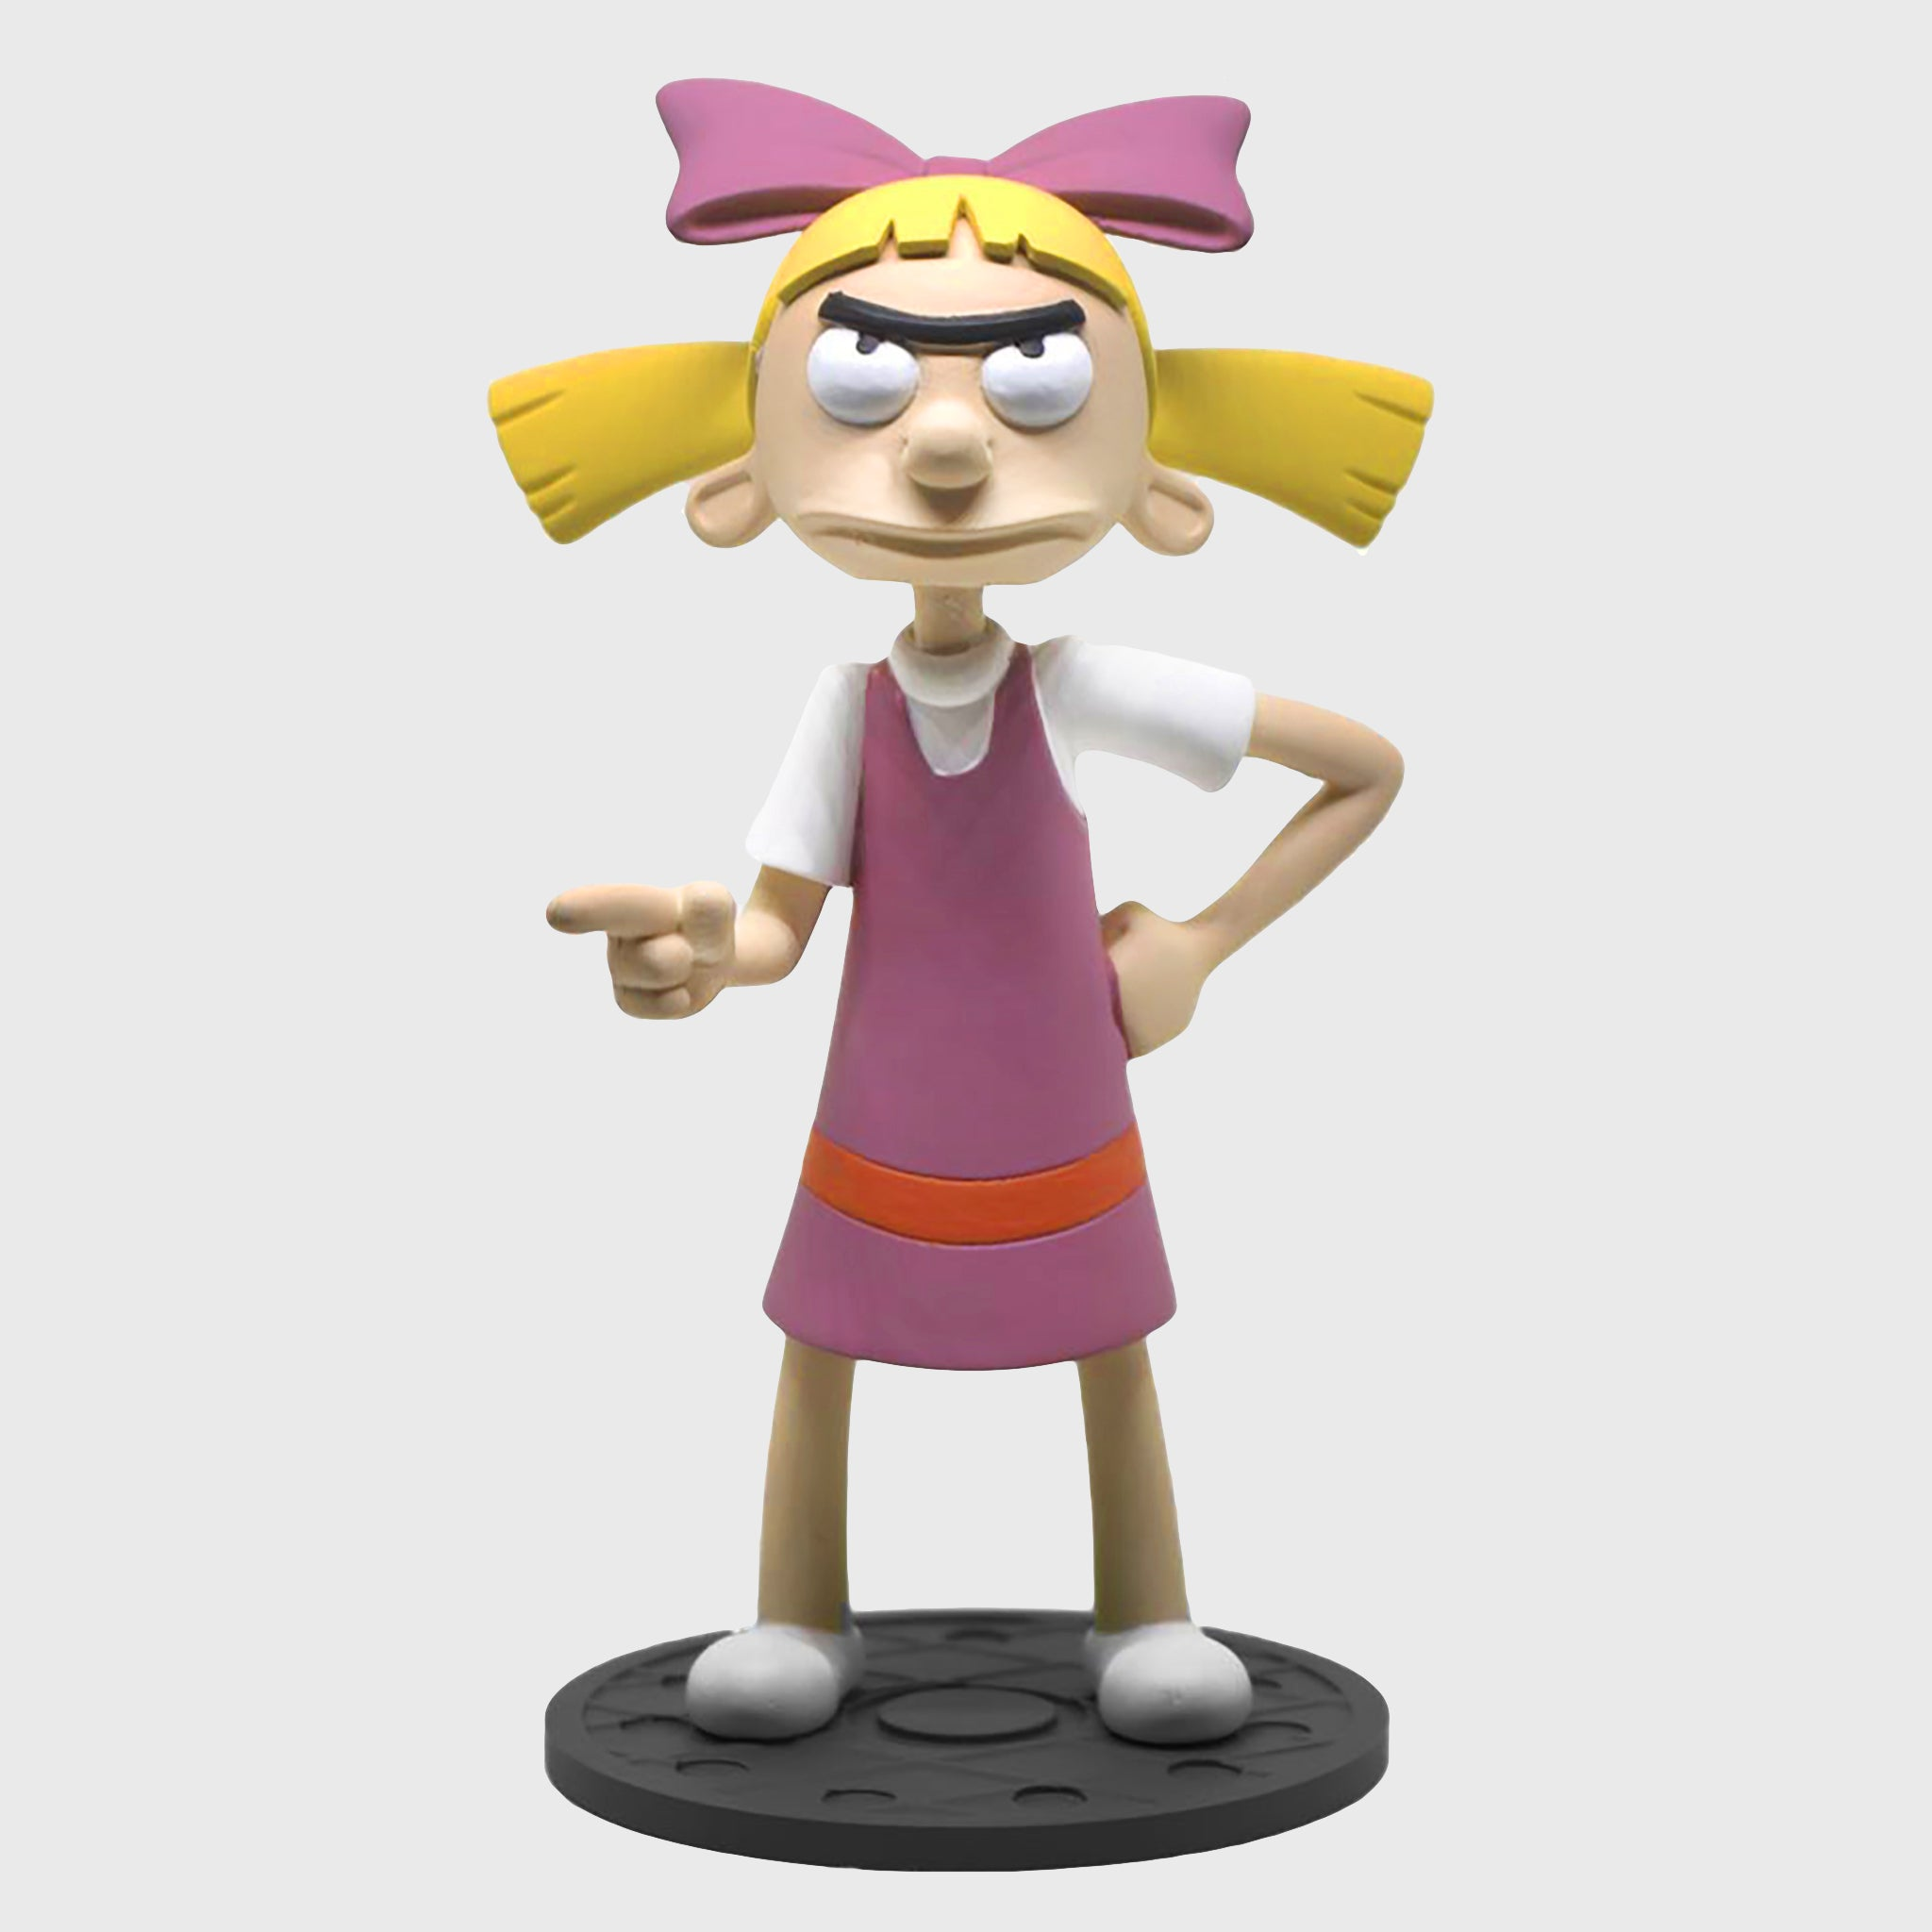 nick box nickelodeon collectible helga bobblehead figurine hey arnold 90s cartoons 90s kids culturefly